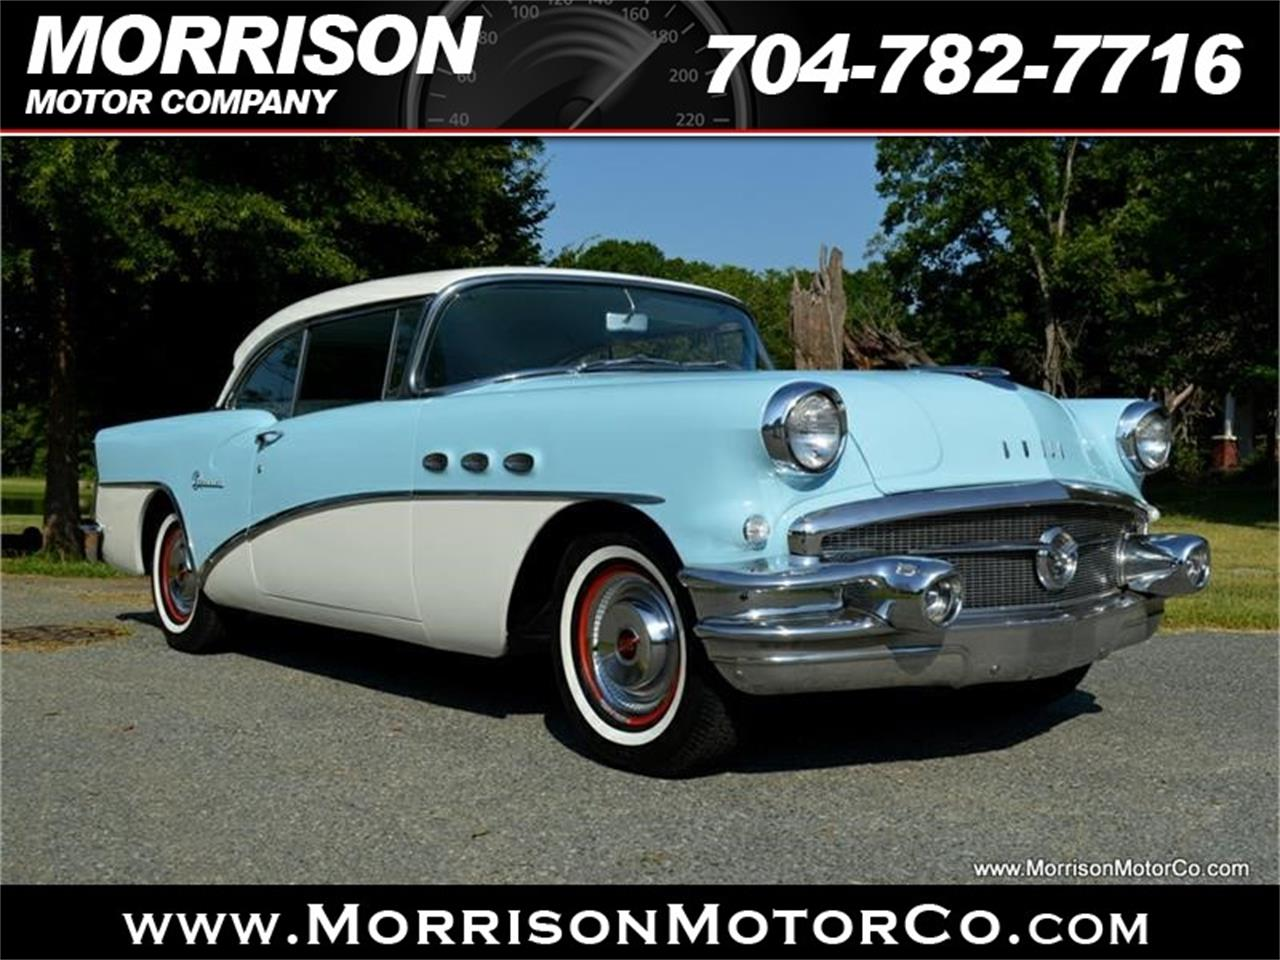 Large Picture of Classic 1956 Buick Special Riviera located in Concord North Carolina - $22,900.00 Offered by Morrison Motor Company - M8P8